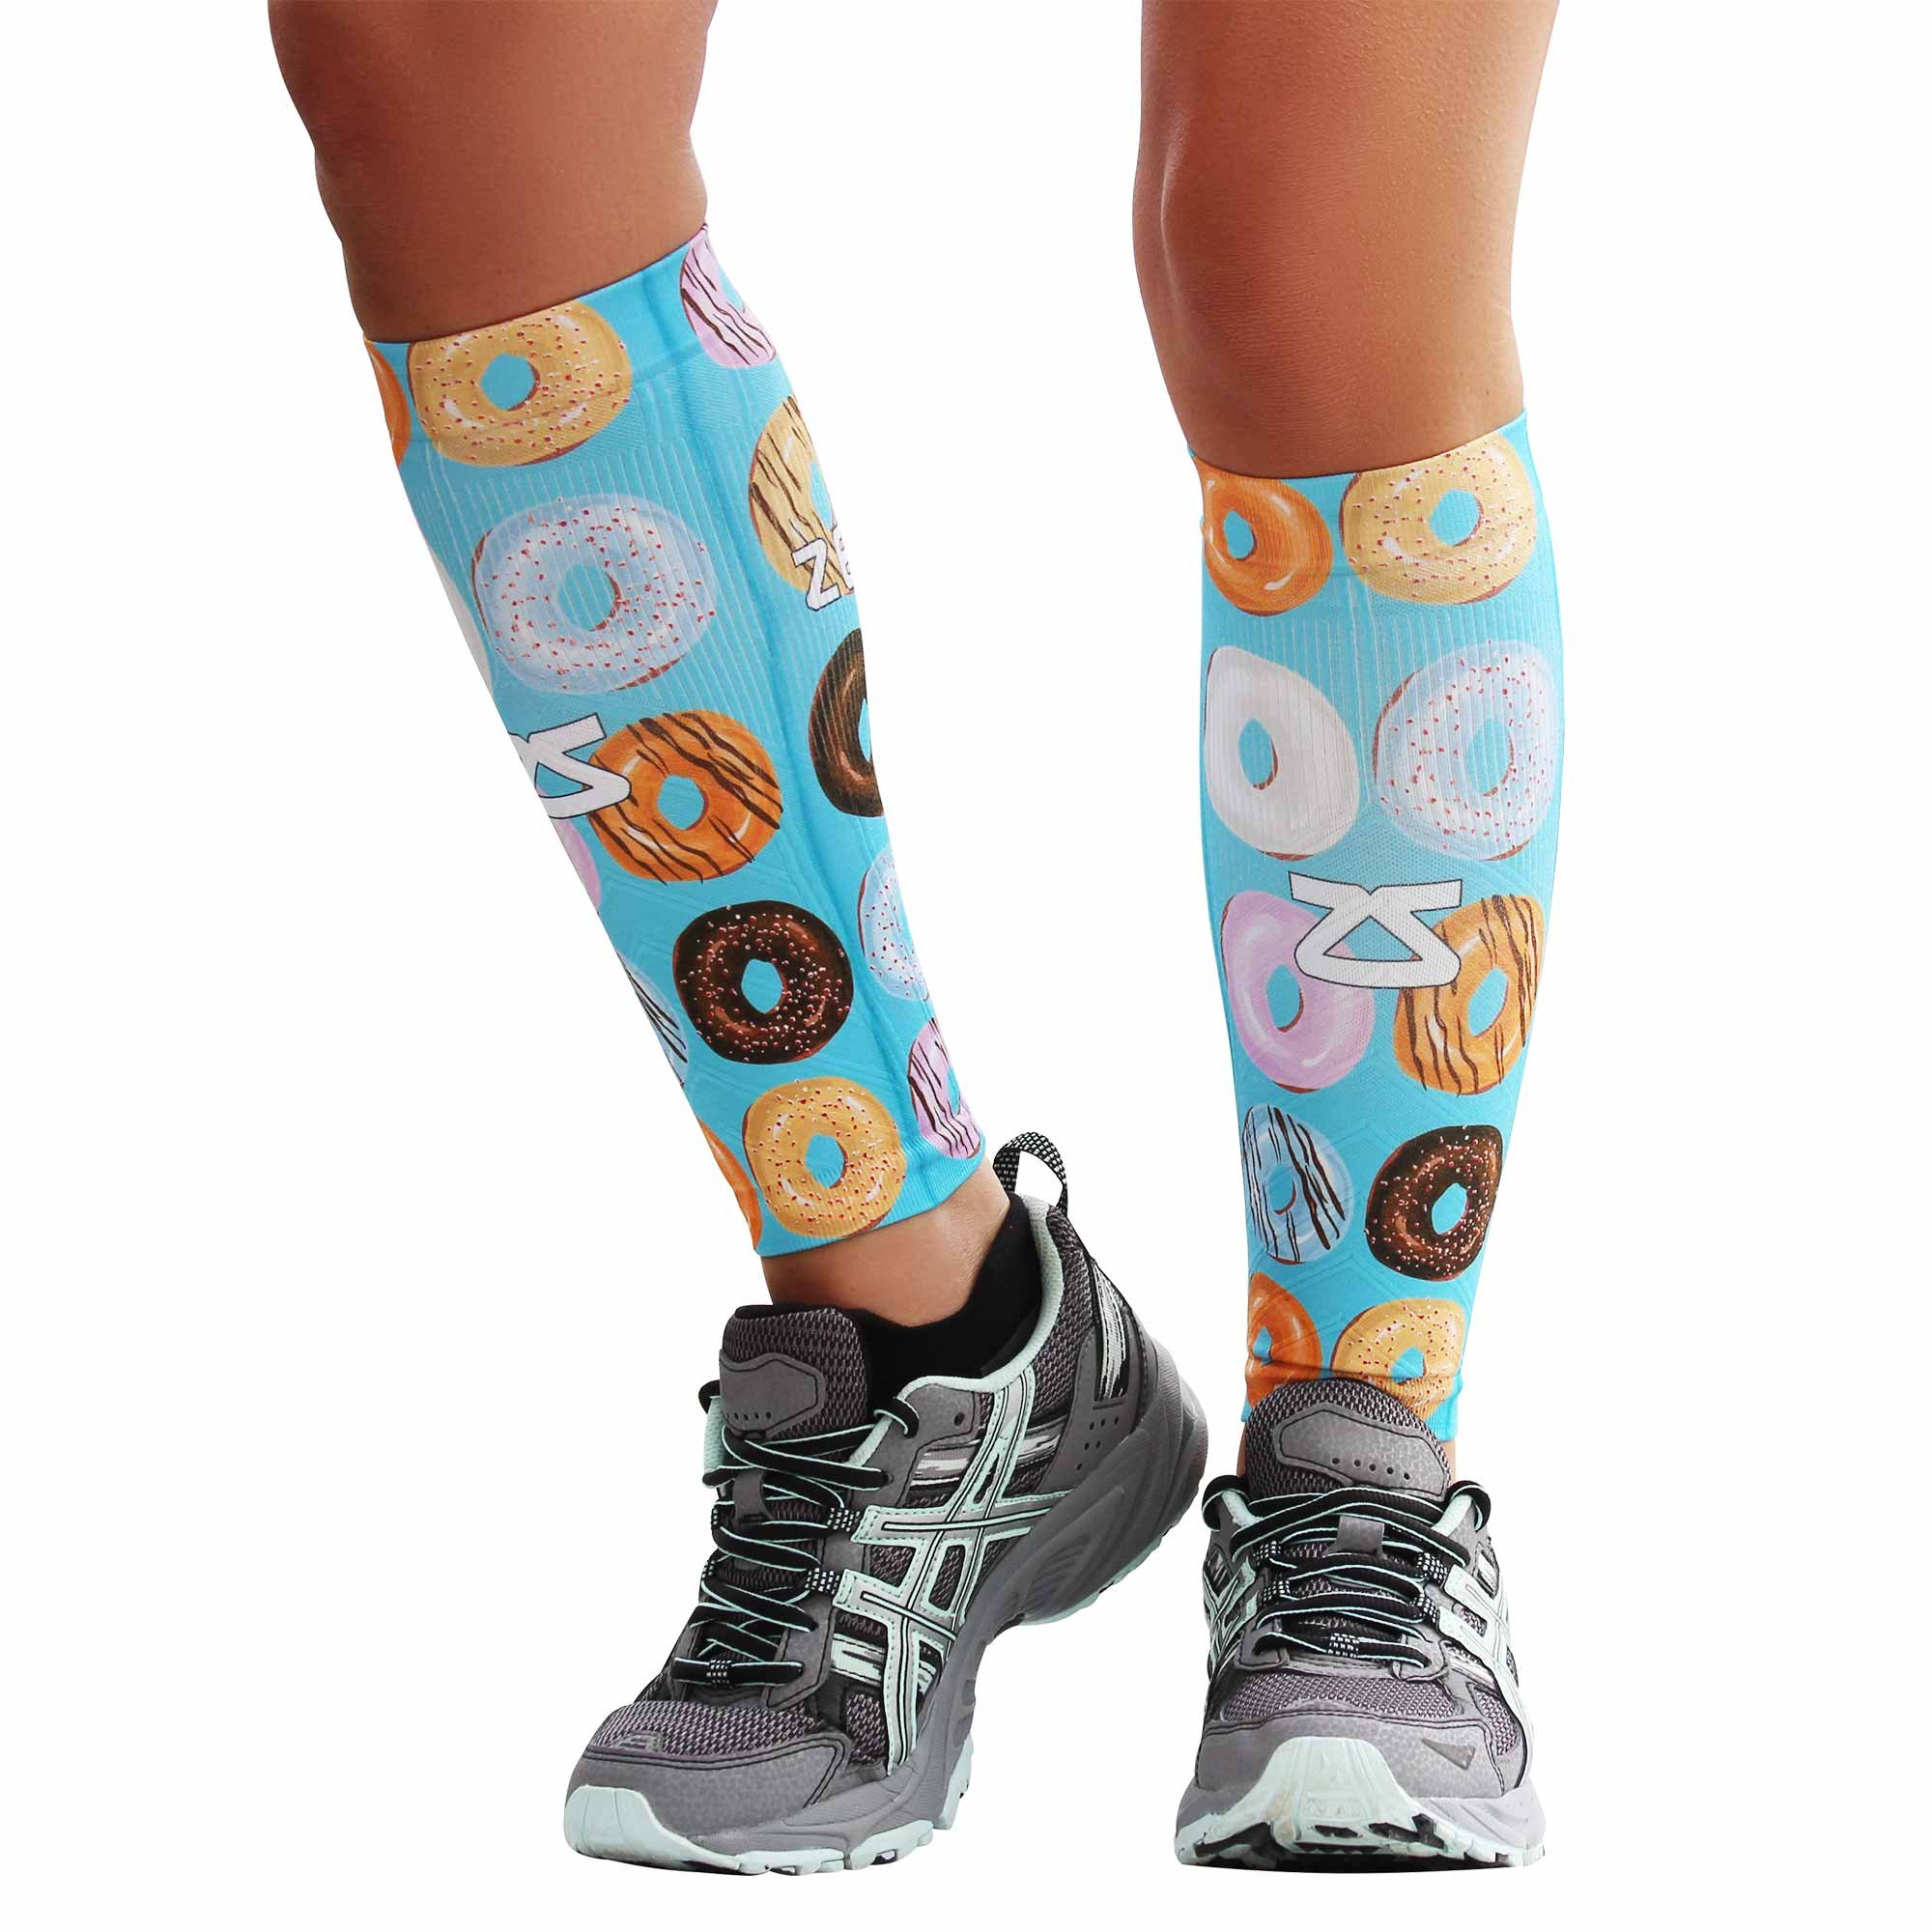 Zensah Compression Leg Sleeves for Running, Donuts, X-Small/Small